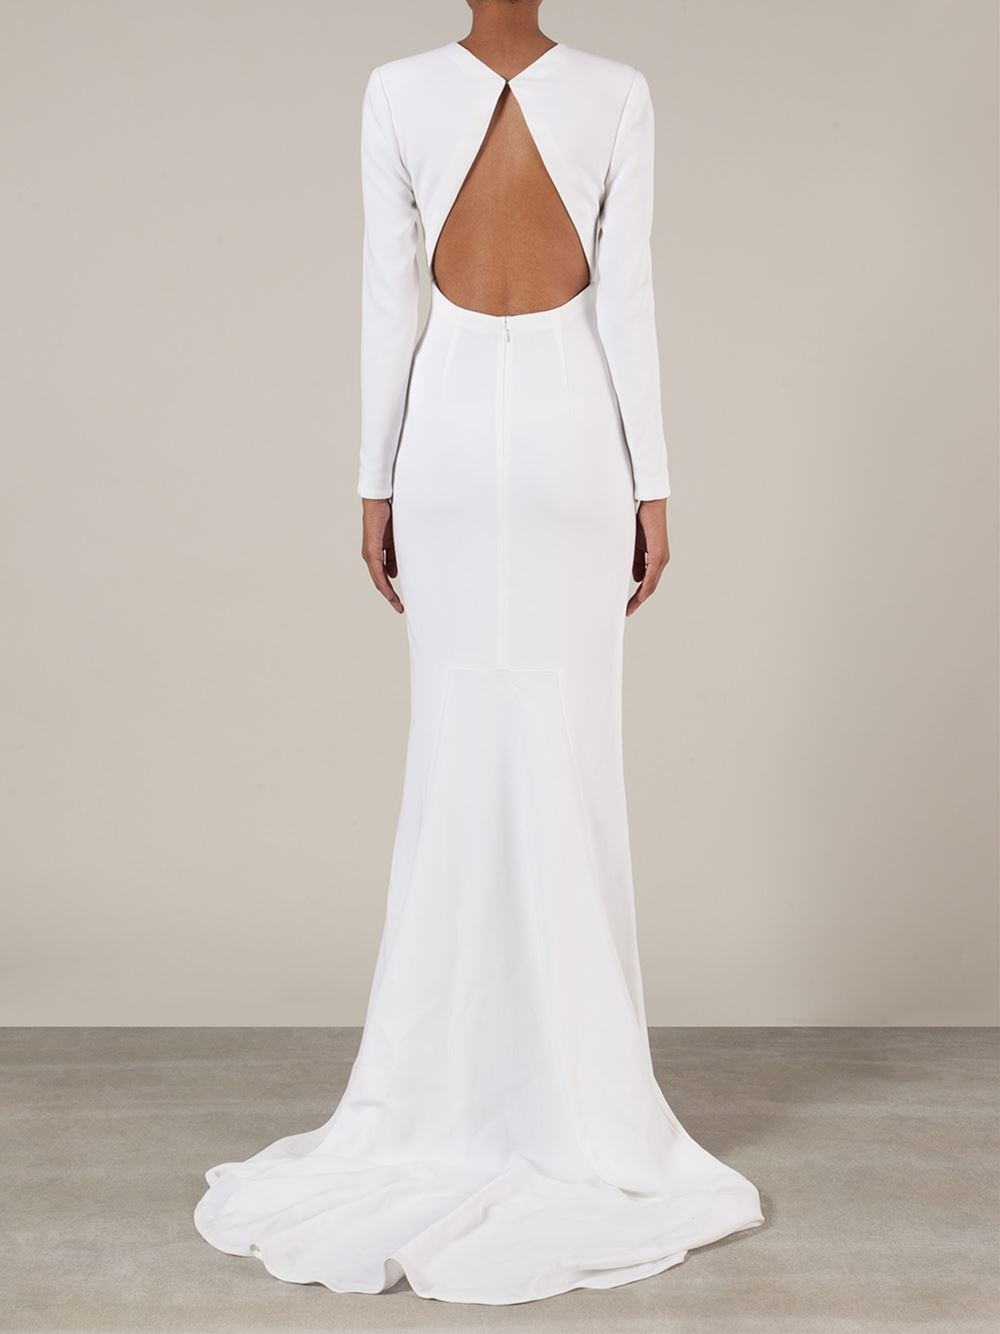 Stella McCartney Wedding Dress